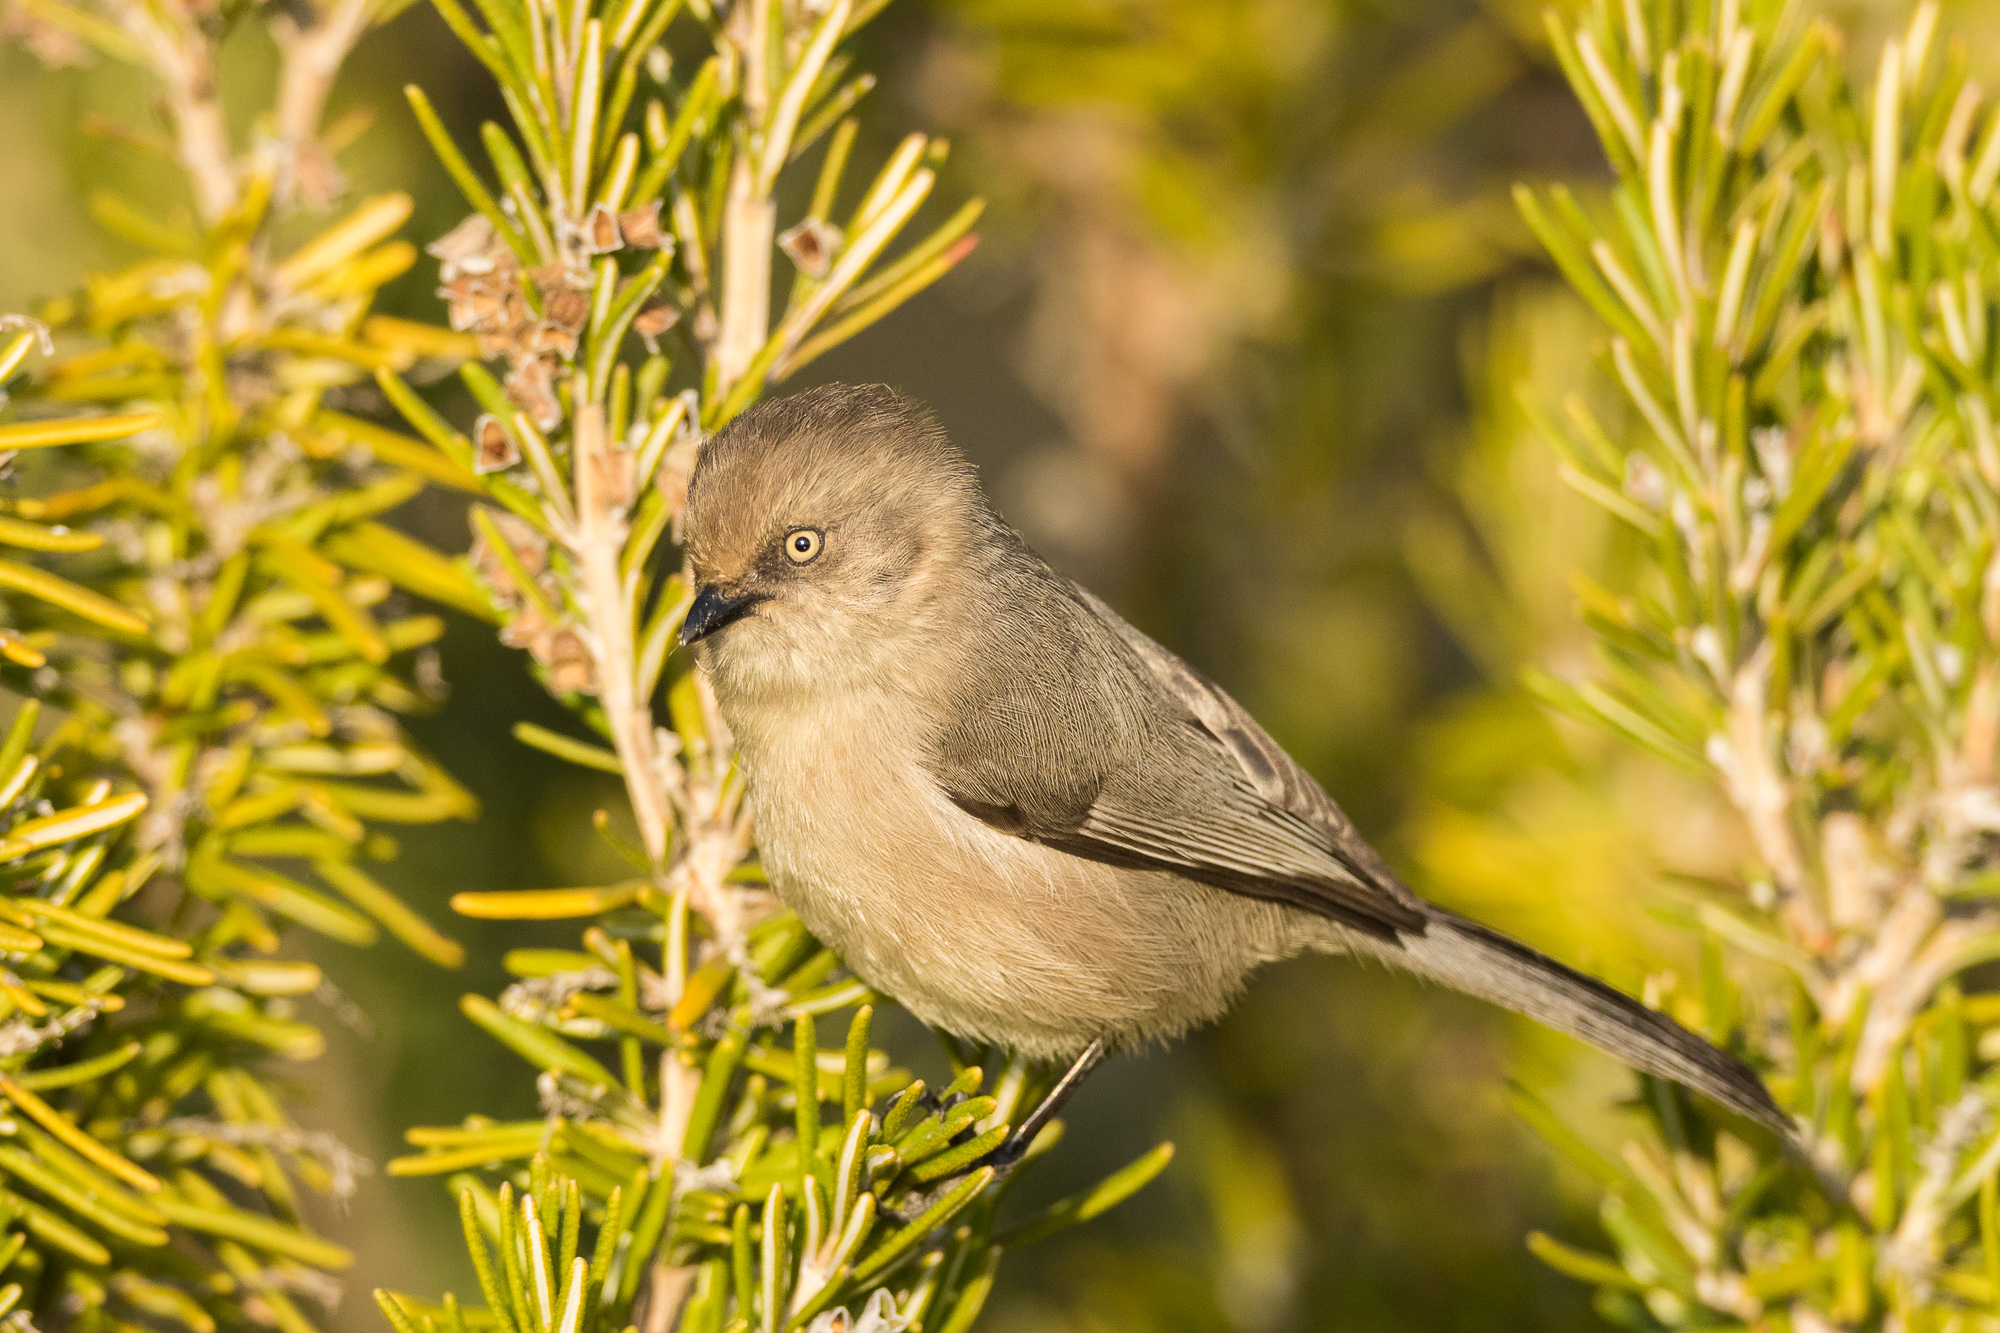 A tiny bushtit perches briefly on an ornamental bush, Redwood Shores, CA.